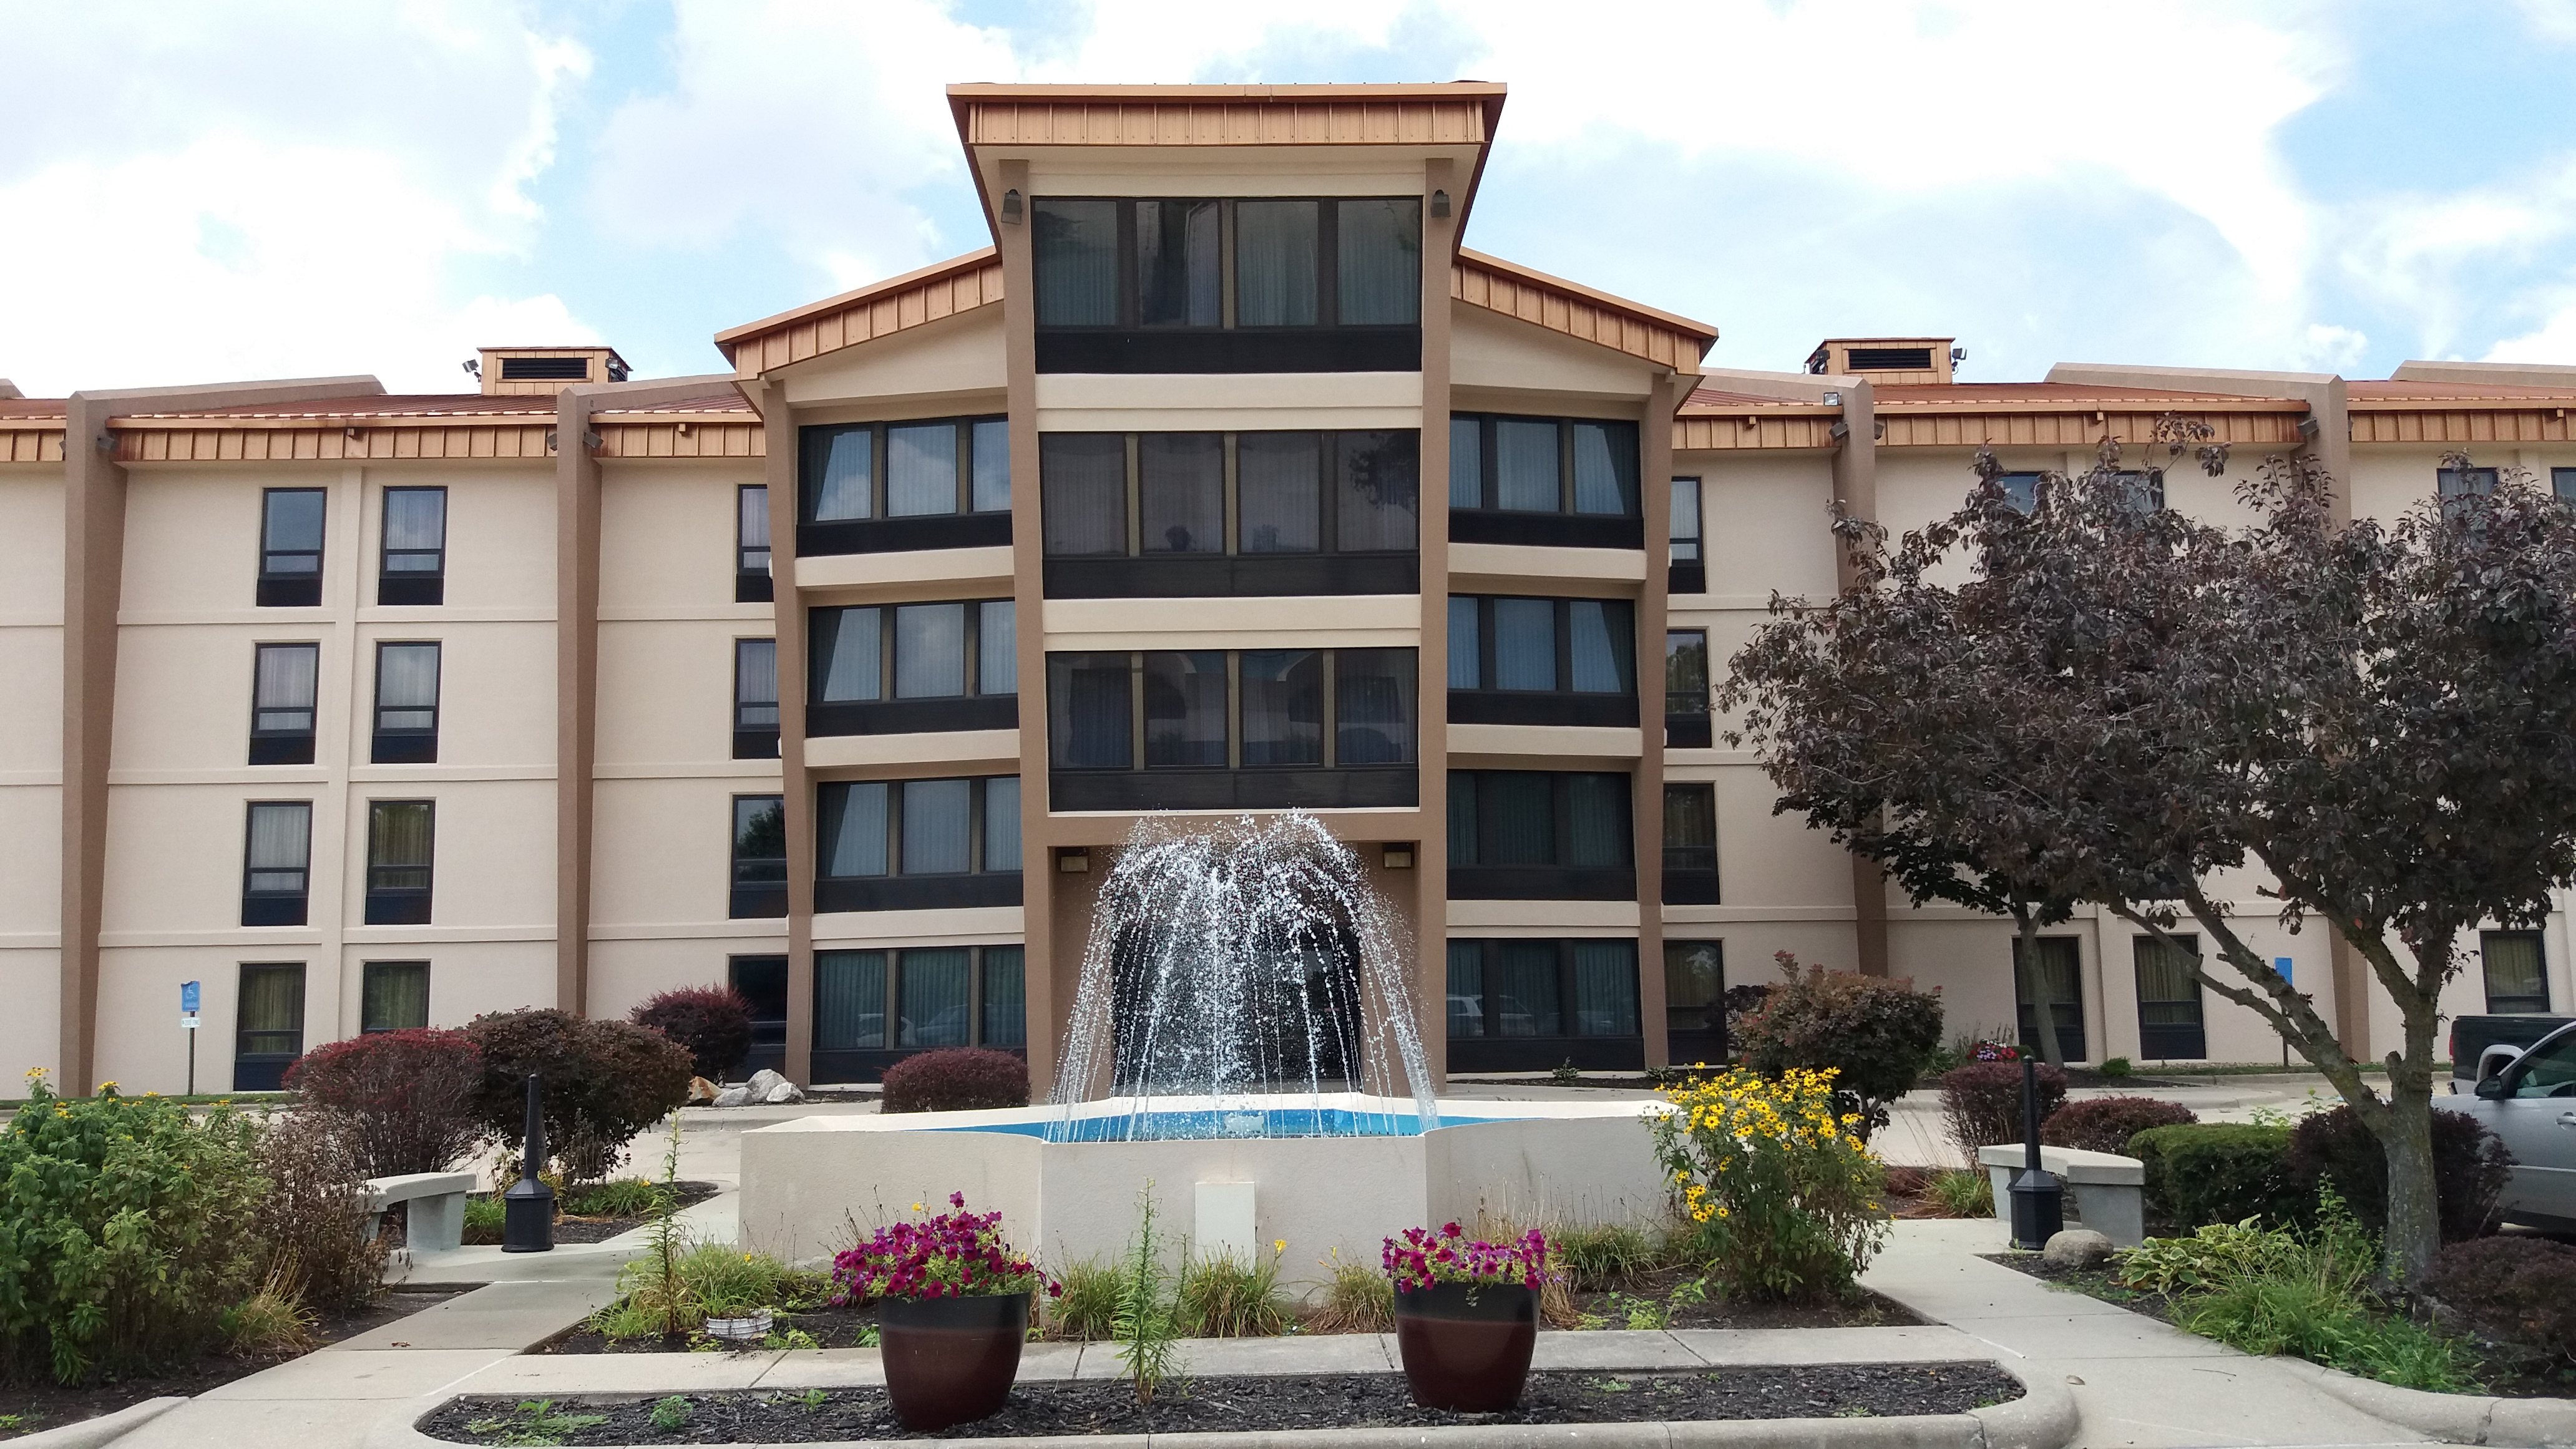 il extended hotels en ihg us by staybridge holiday united nebraska states in inn lincoln stay destinations and express suites